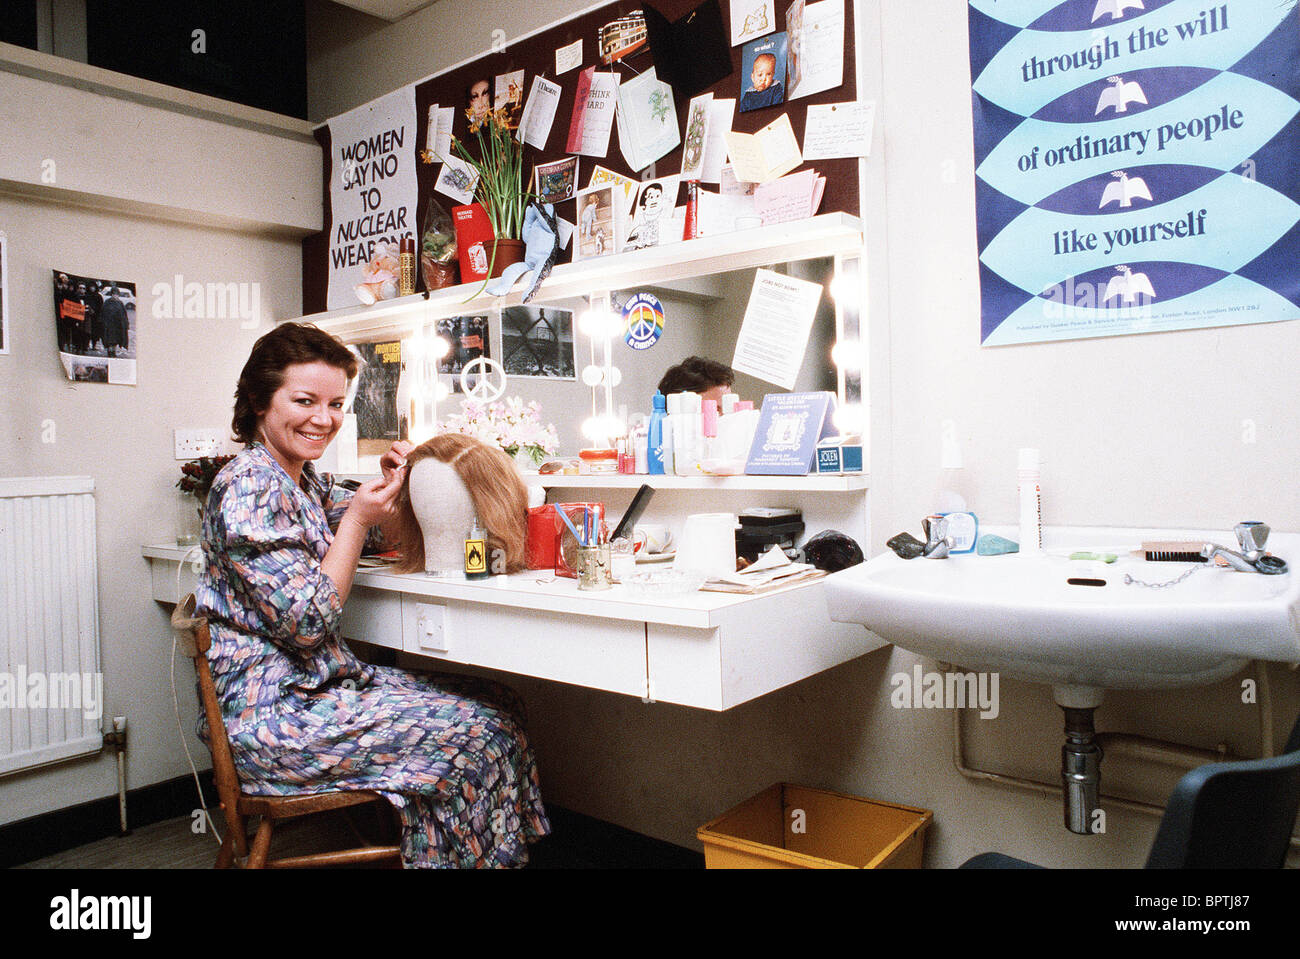 CLAIRE HIGGINS ACTRESS (1978) - Stock Image